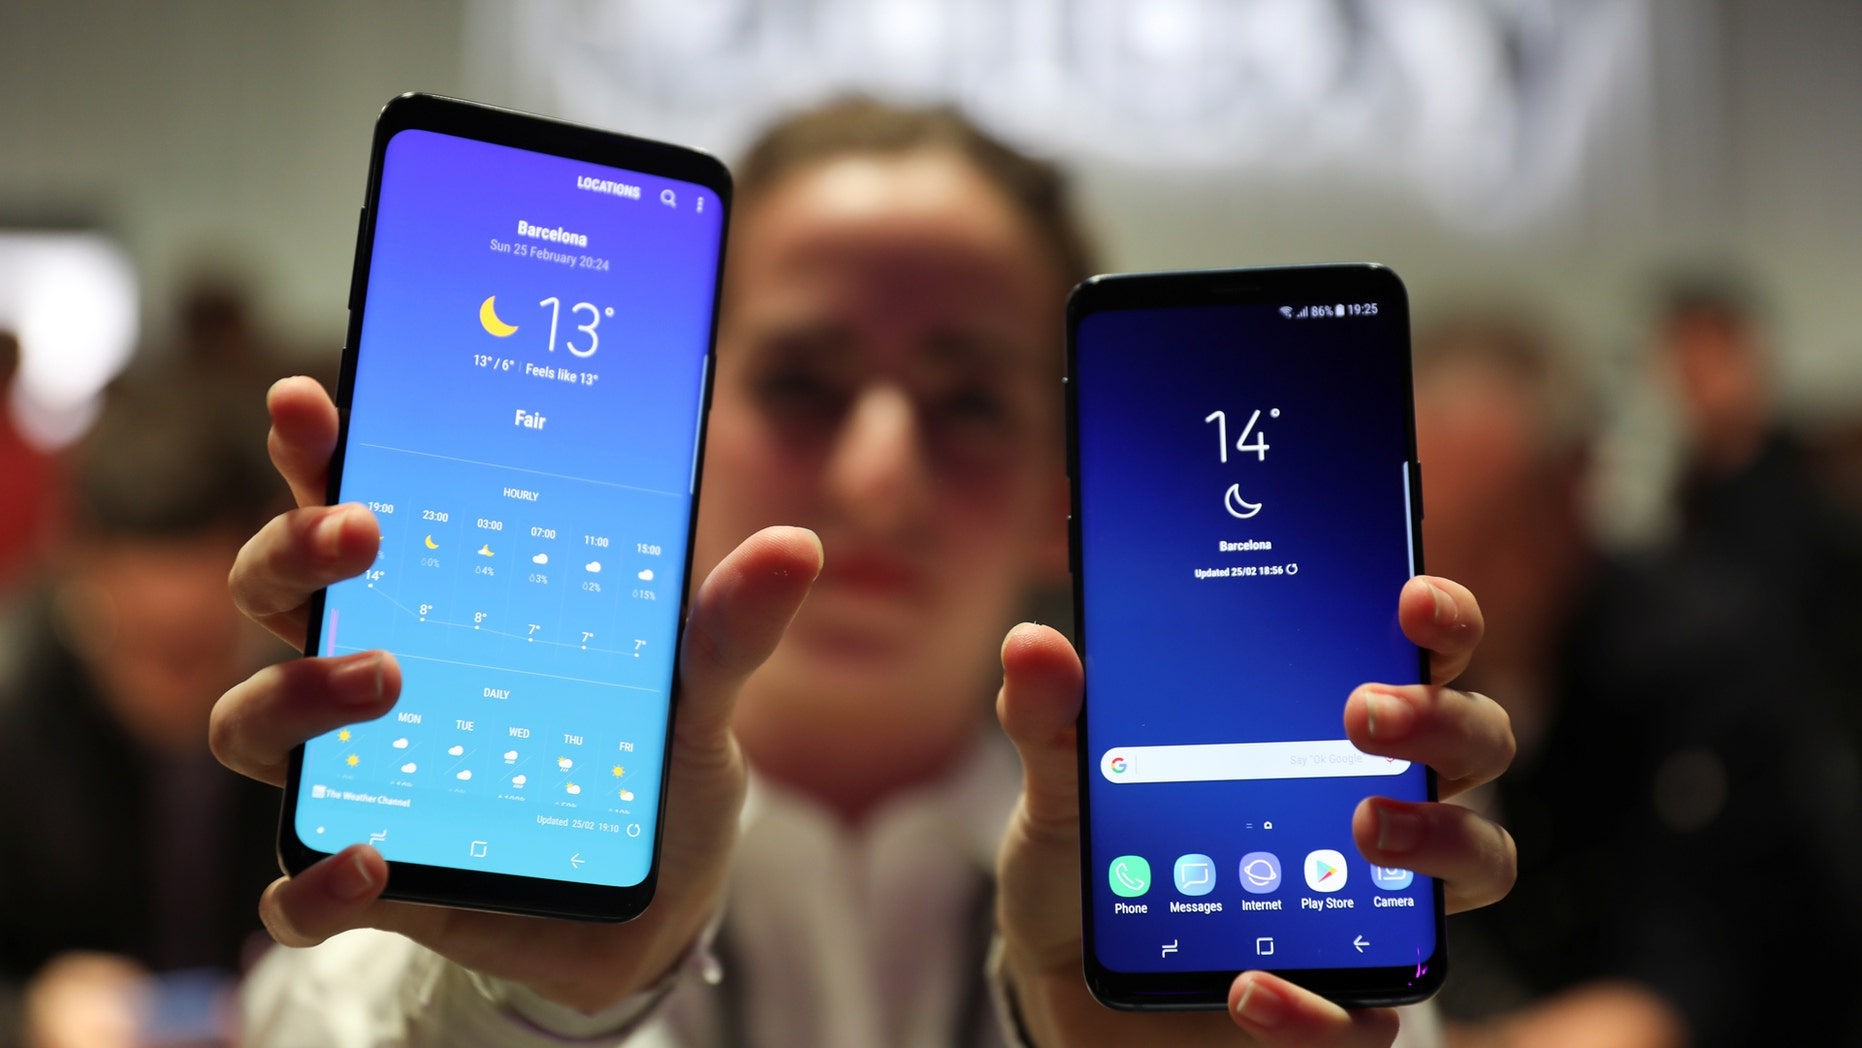 File photo - A hostess shows up Samsung's new S9 (R) and S9 Plus devices after a presentation ceremony at the Mobile World Congress in Barcelona, Spain Feb. 25, 2018. (REUTERS/Sergio Perez)